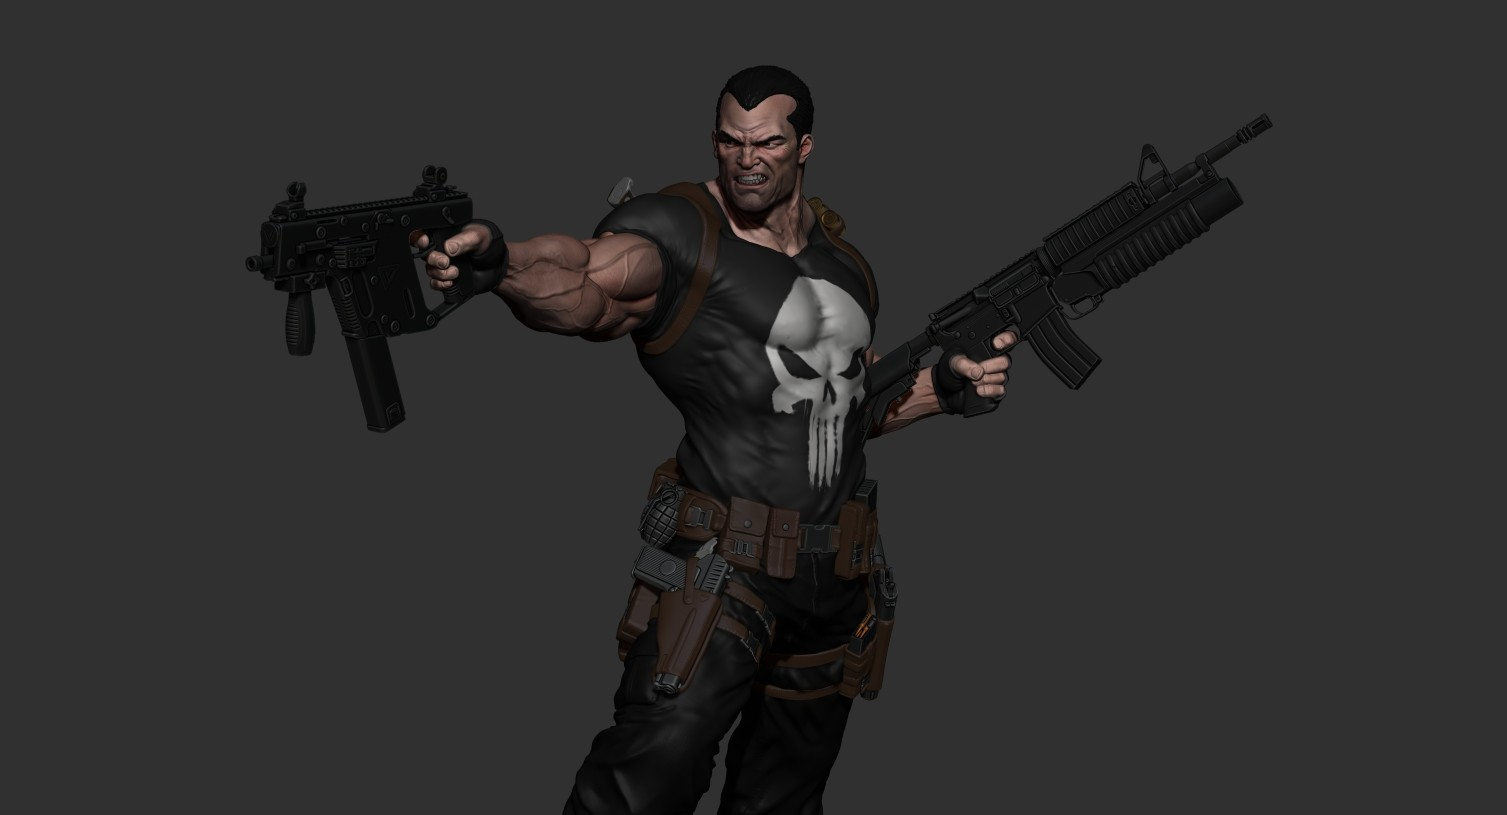 Franco carlesimo punisher 086